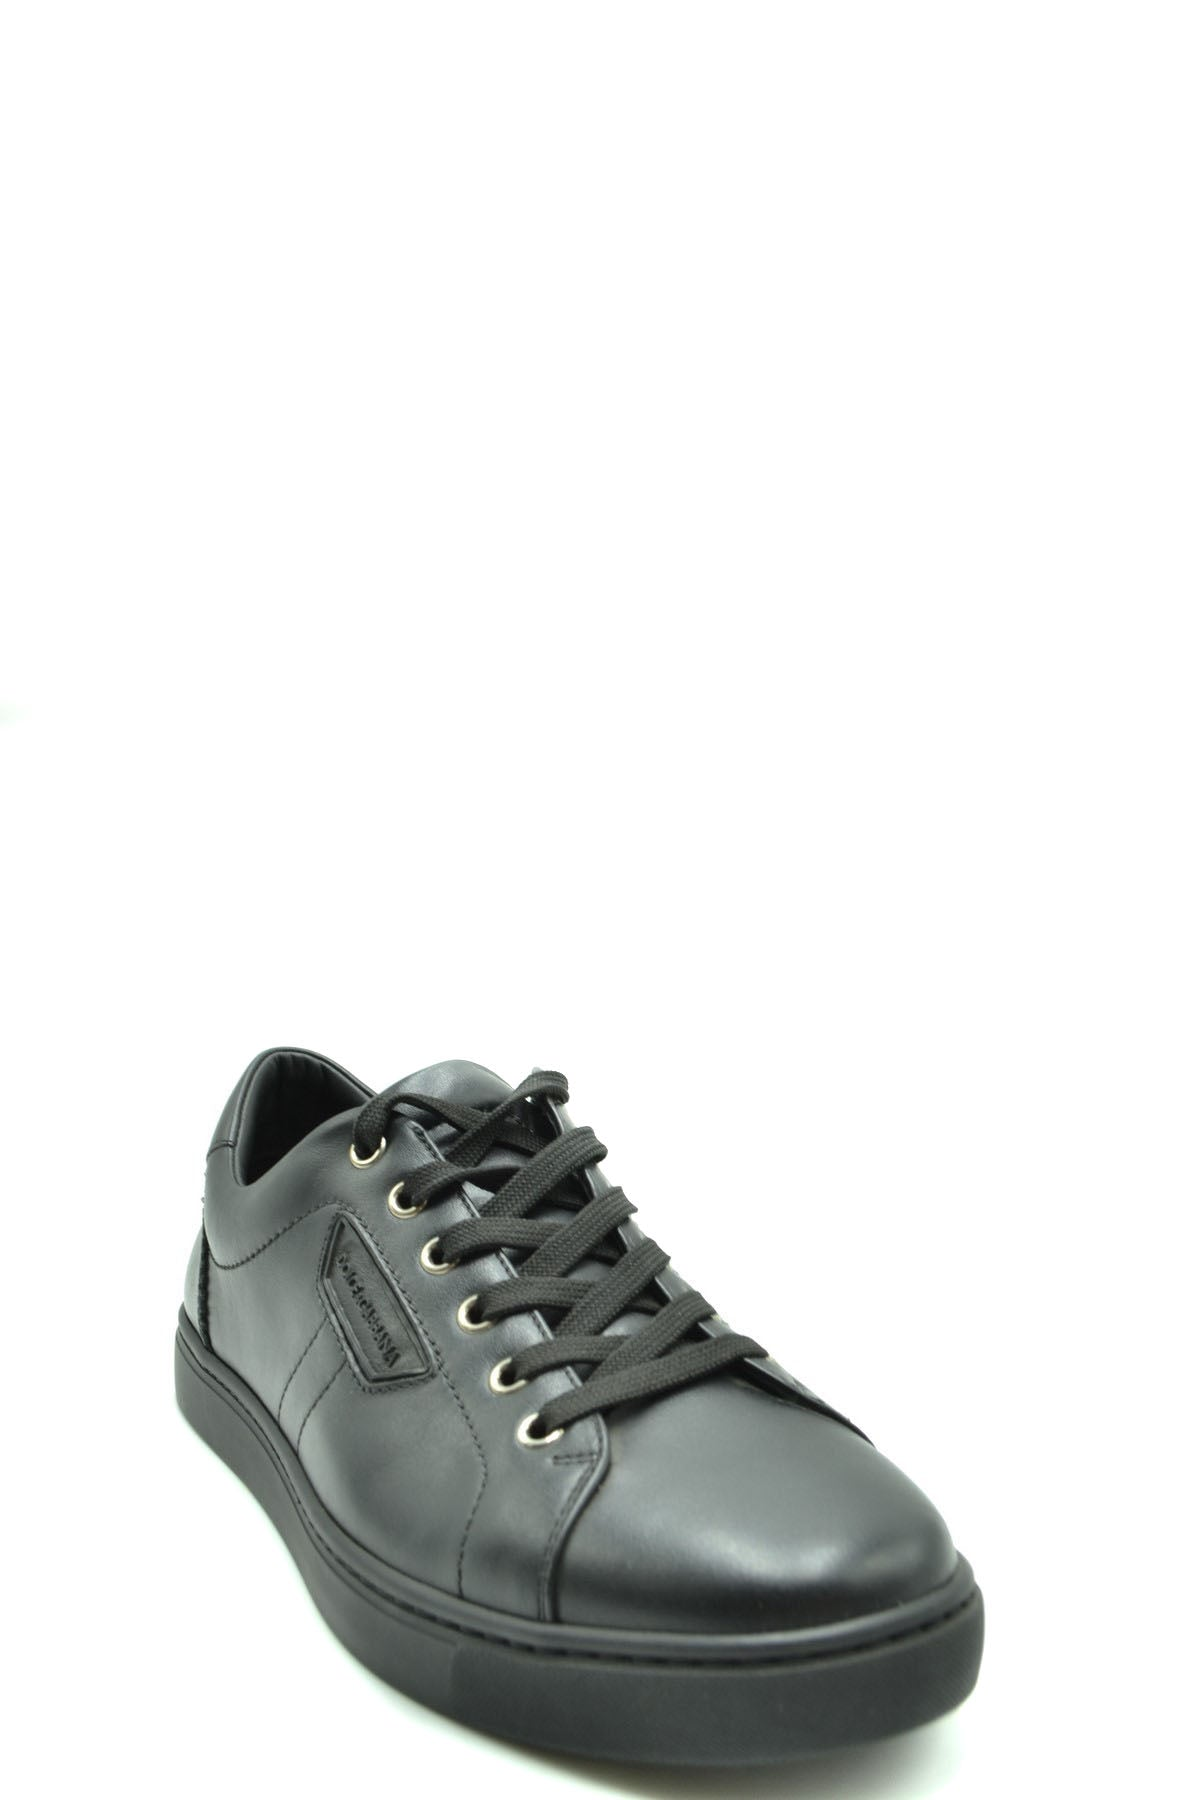 Shoes Dolce & Gabbana-Sports & Entertainment - Sneakers-Product Details Terms: New With LabelMain Color: BlackType Of Accessory: ShoesSeason: Fall / WinterMade In: ItalyGender: ManSize: EuComposition: Leather 100%Year: 2020Manufacturer Part Number: Cs1362 A3444 87581-Keyomi-Sook